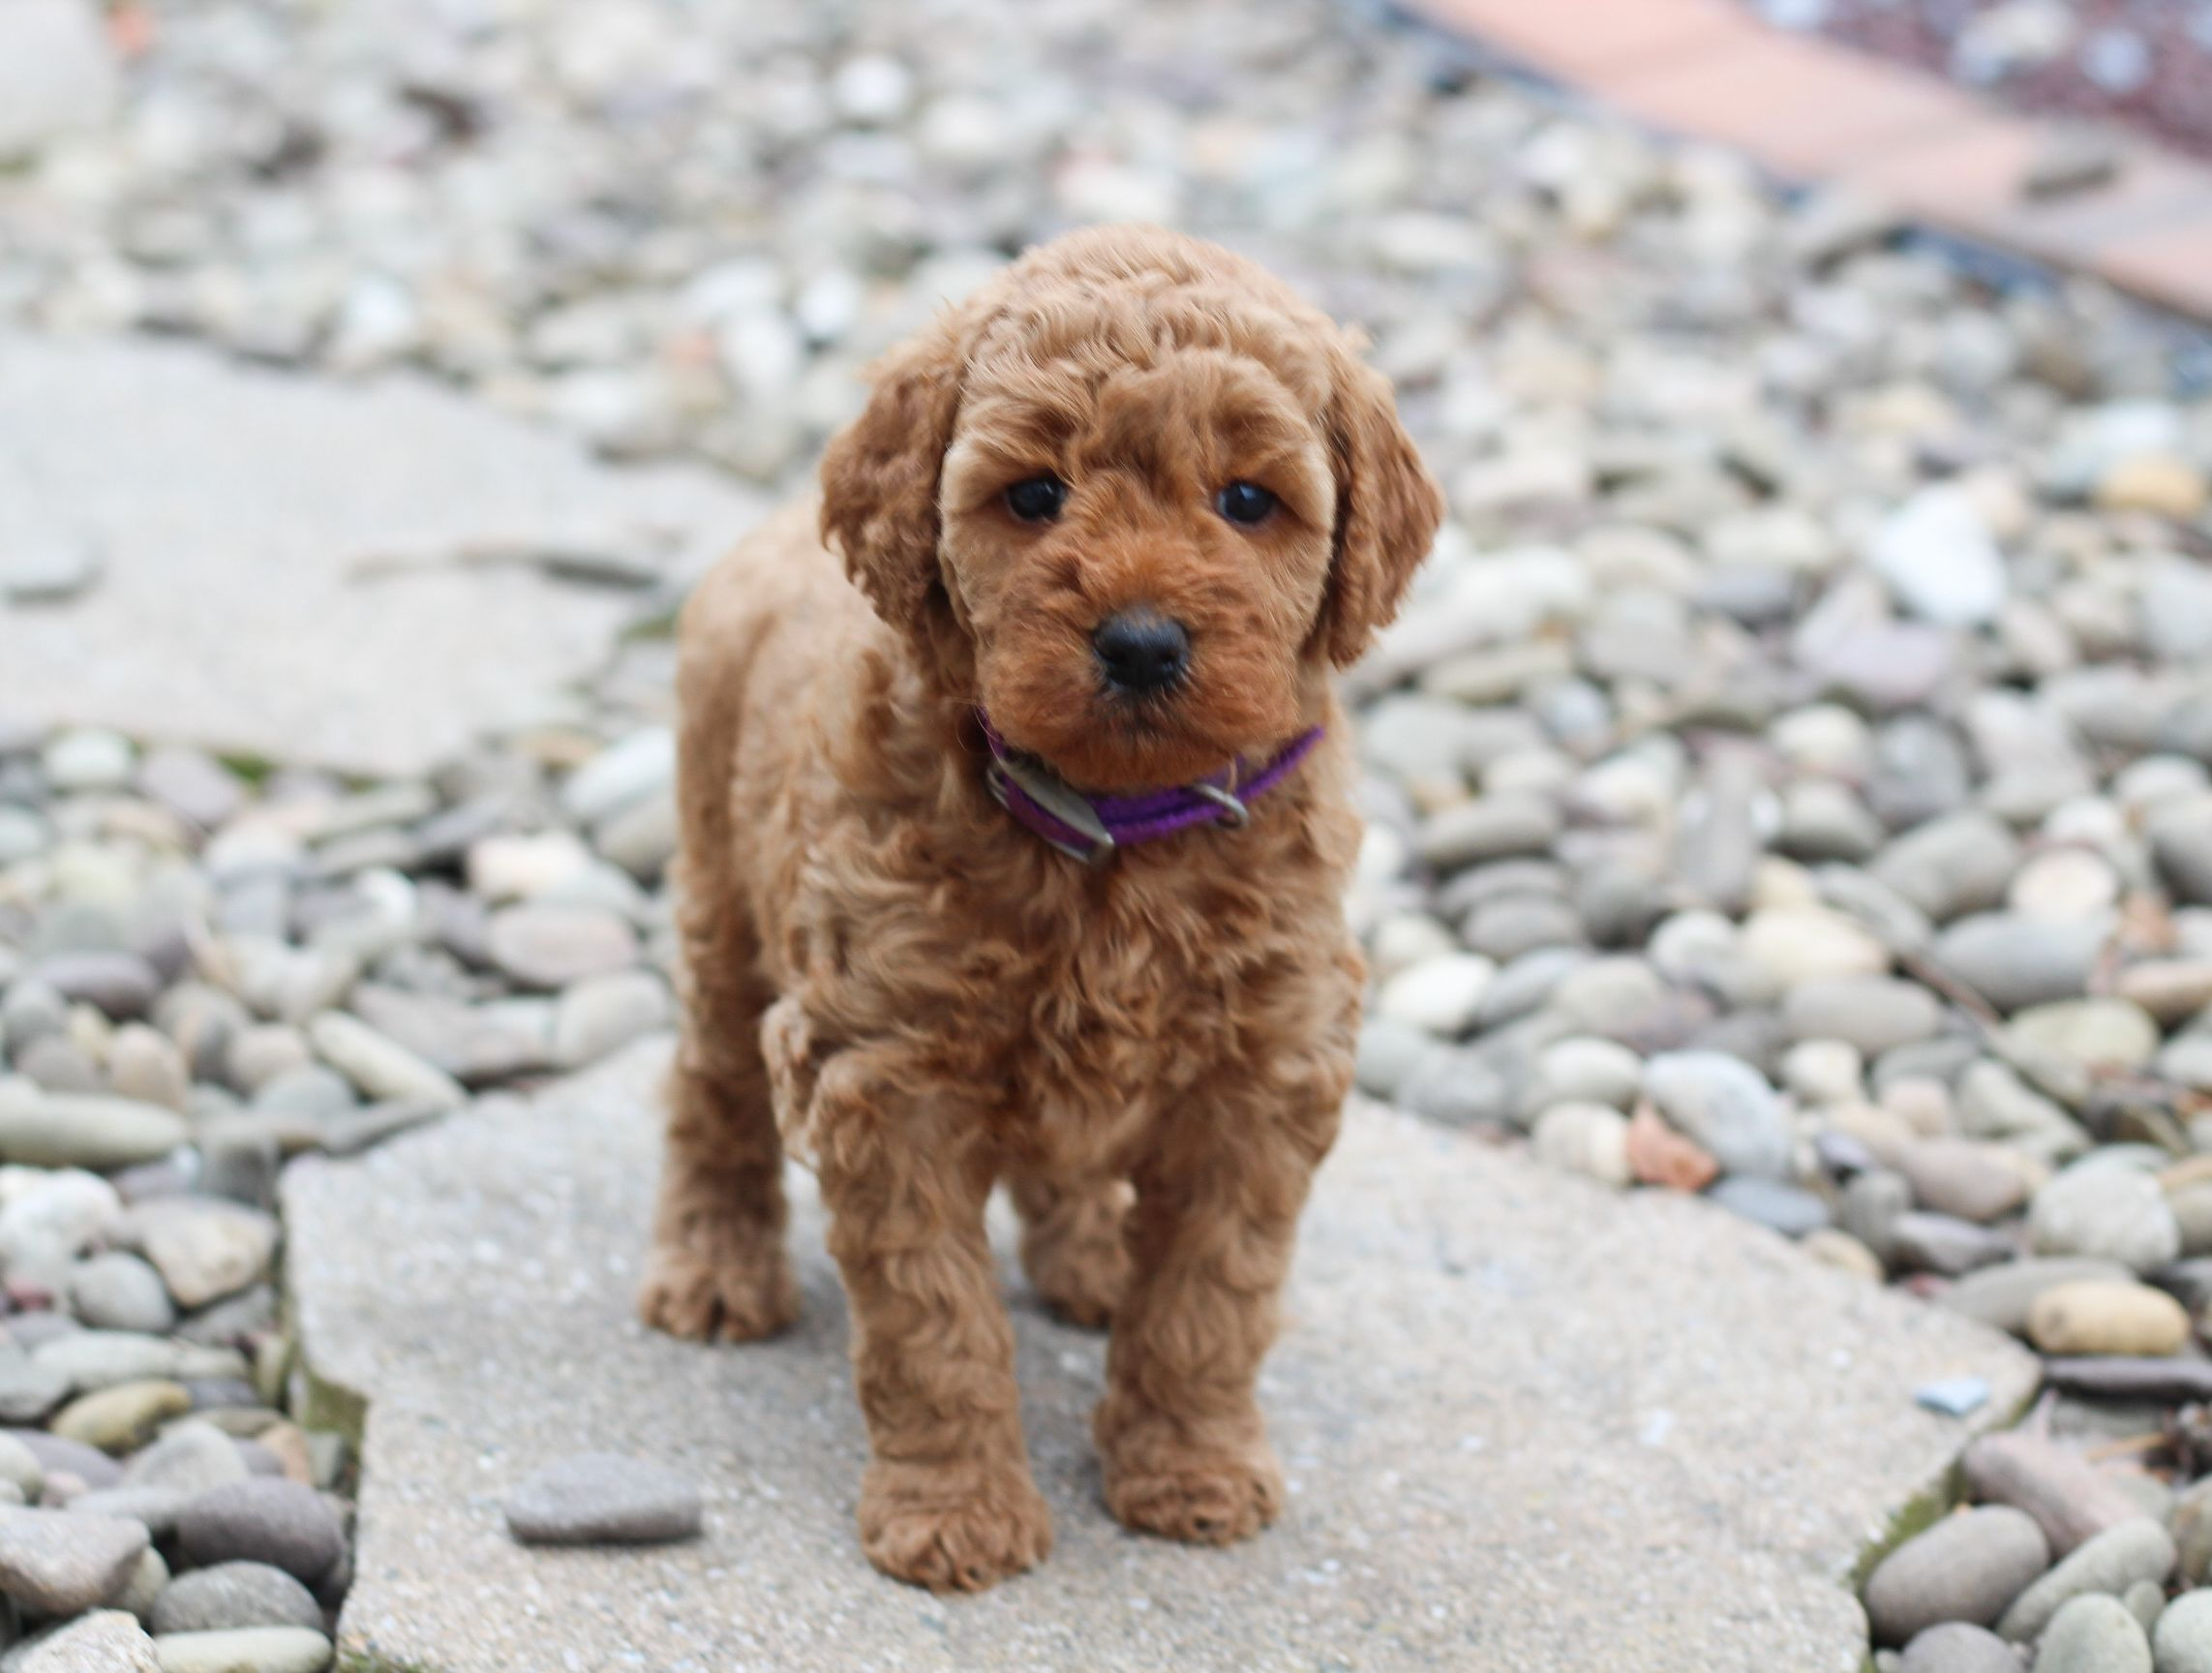 Pin By Buckeye Puppies On Cute Animals In 2020 Mini Goldendoodle Puppies Goldendoodle Puppy Goldendoodle Puppy For Sale